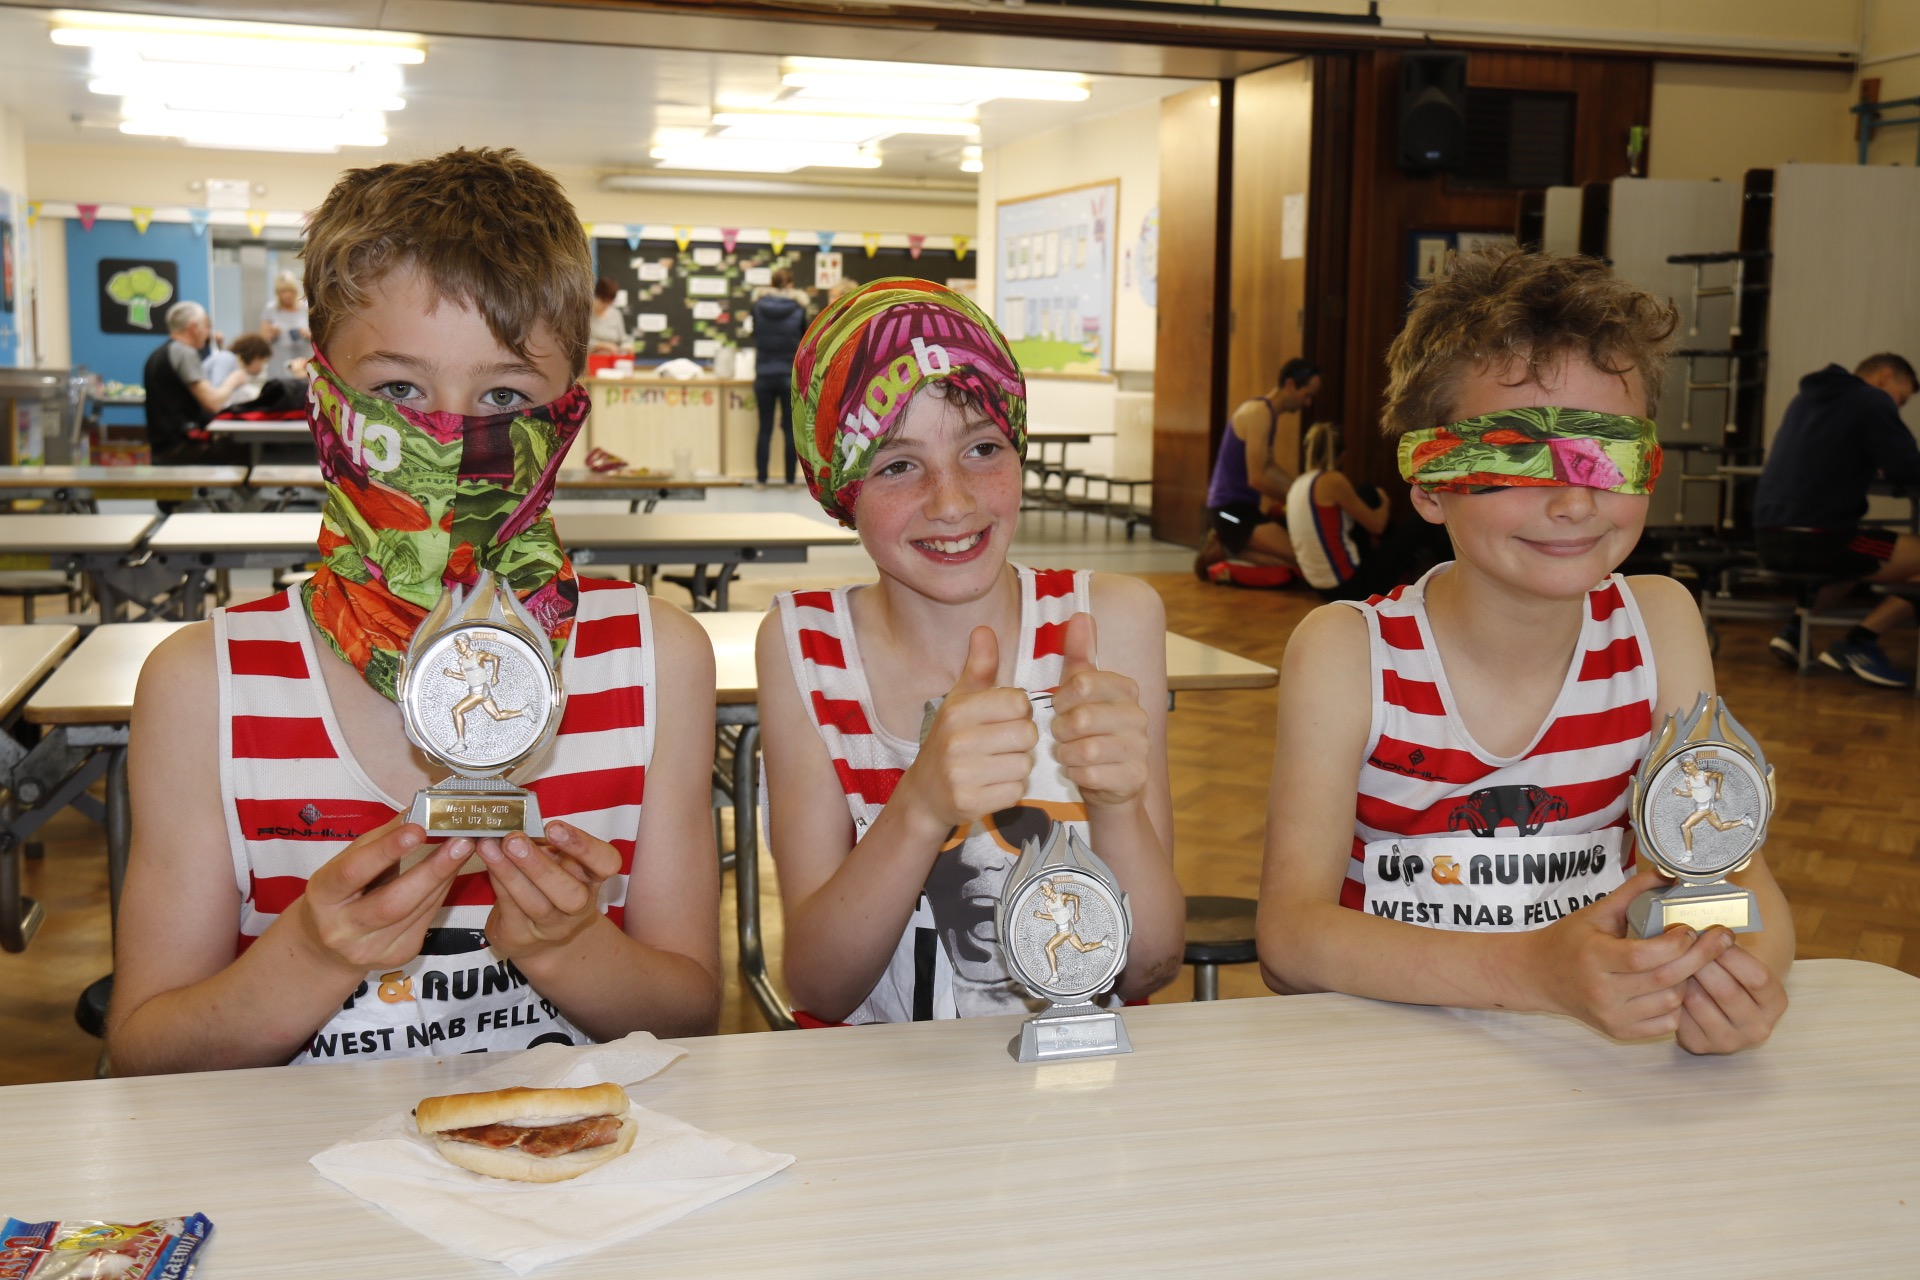 Speak no evil, hear no evil, see no evil ... James, William and Patrick with their prizes